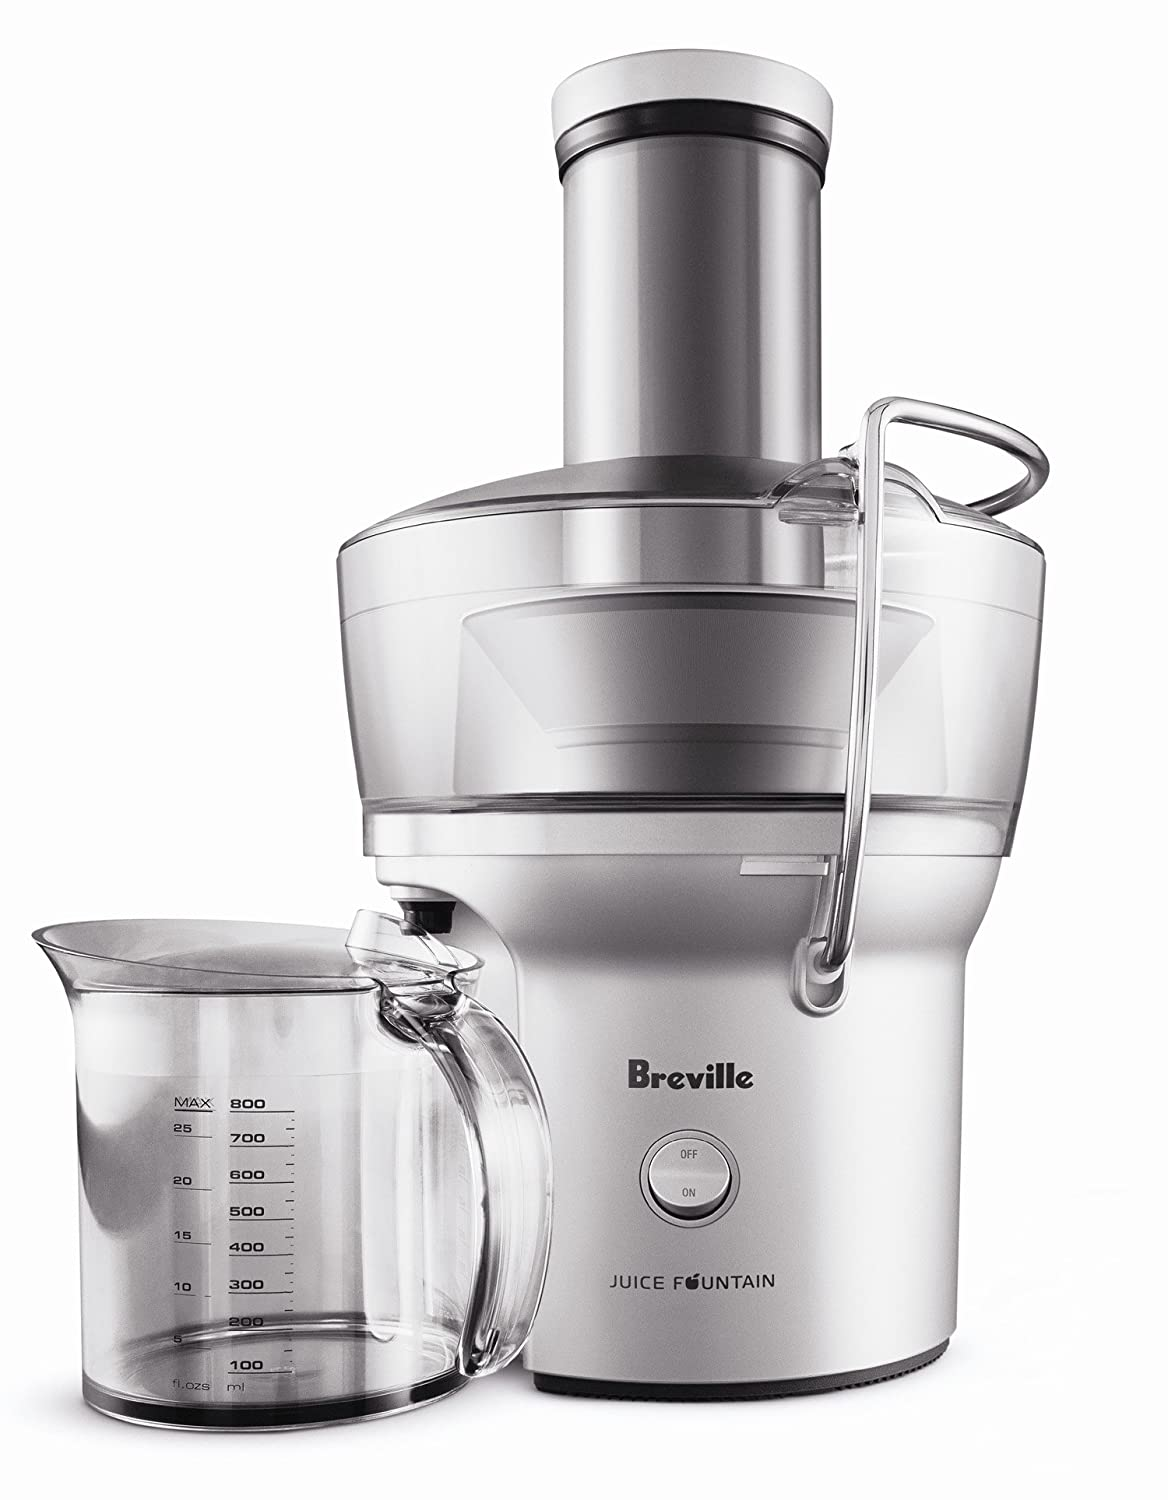 Breville BJE200XL Compact Juice Fountain 700-Watt Juicer